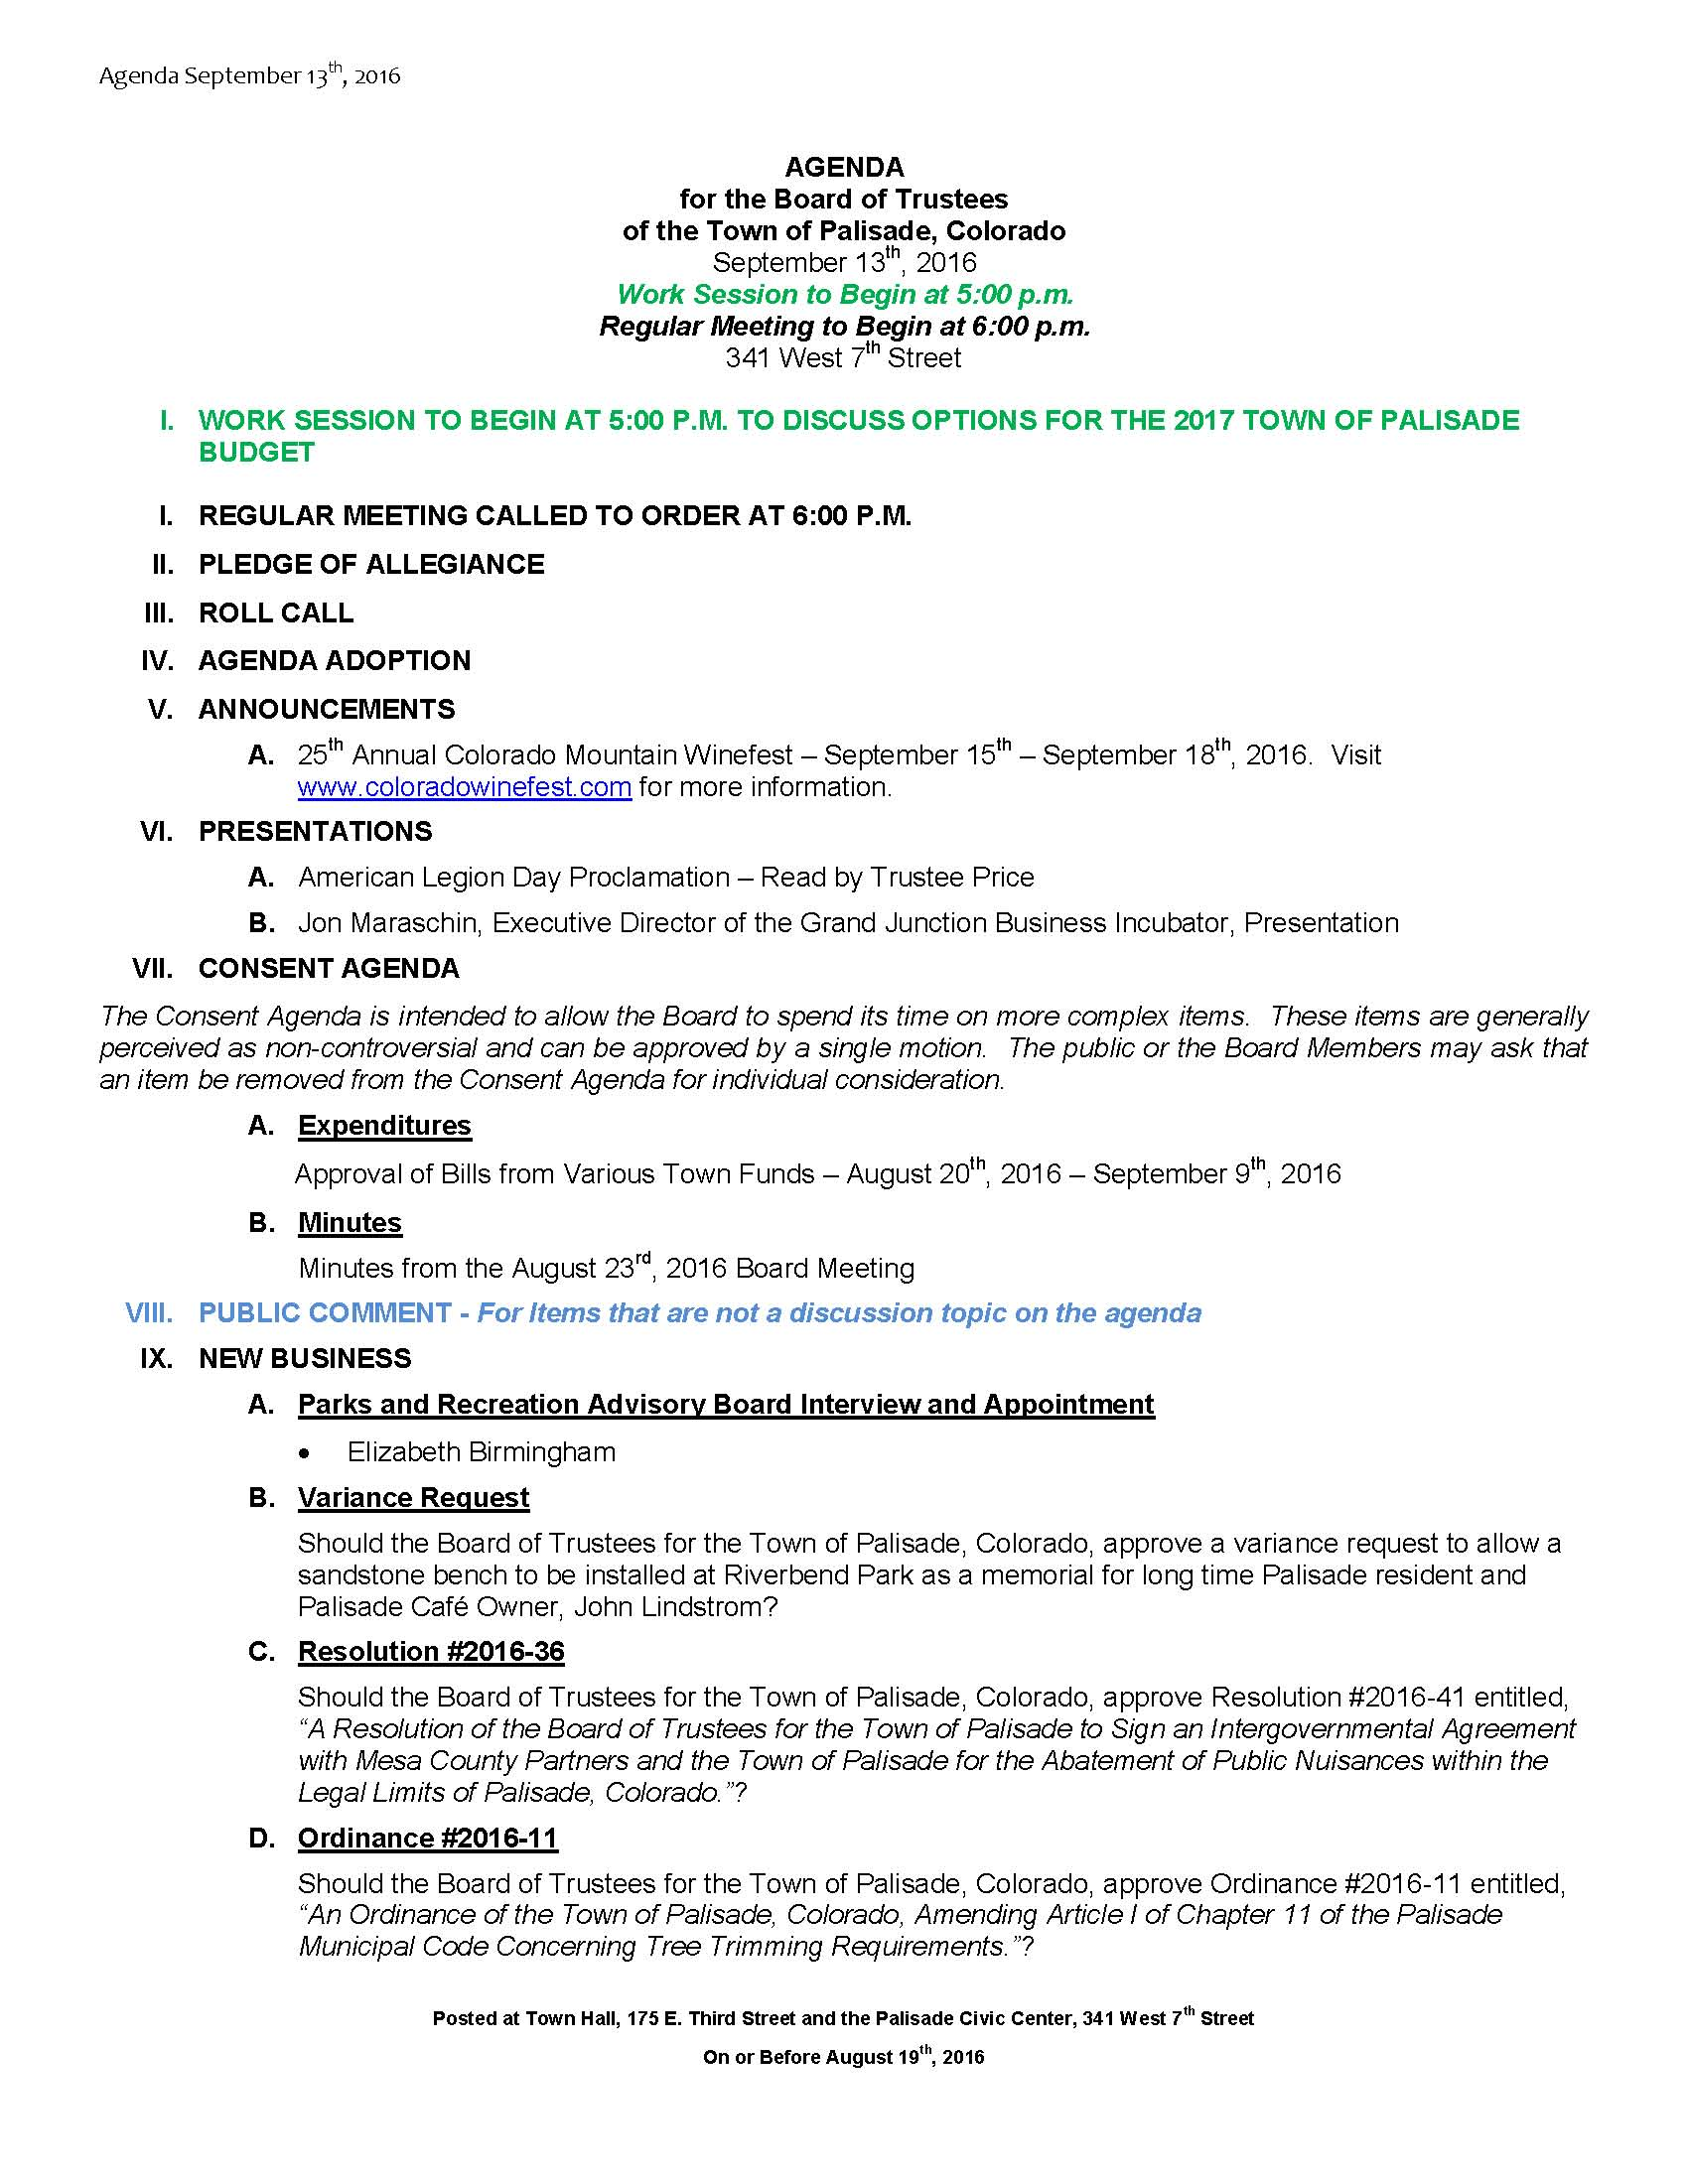 September 13th 2016 Board Meeting Agenda Page 1